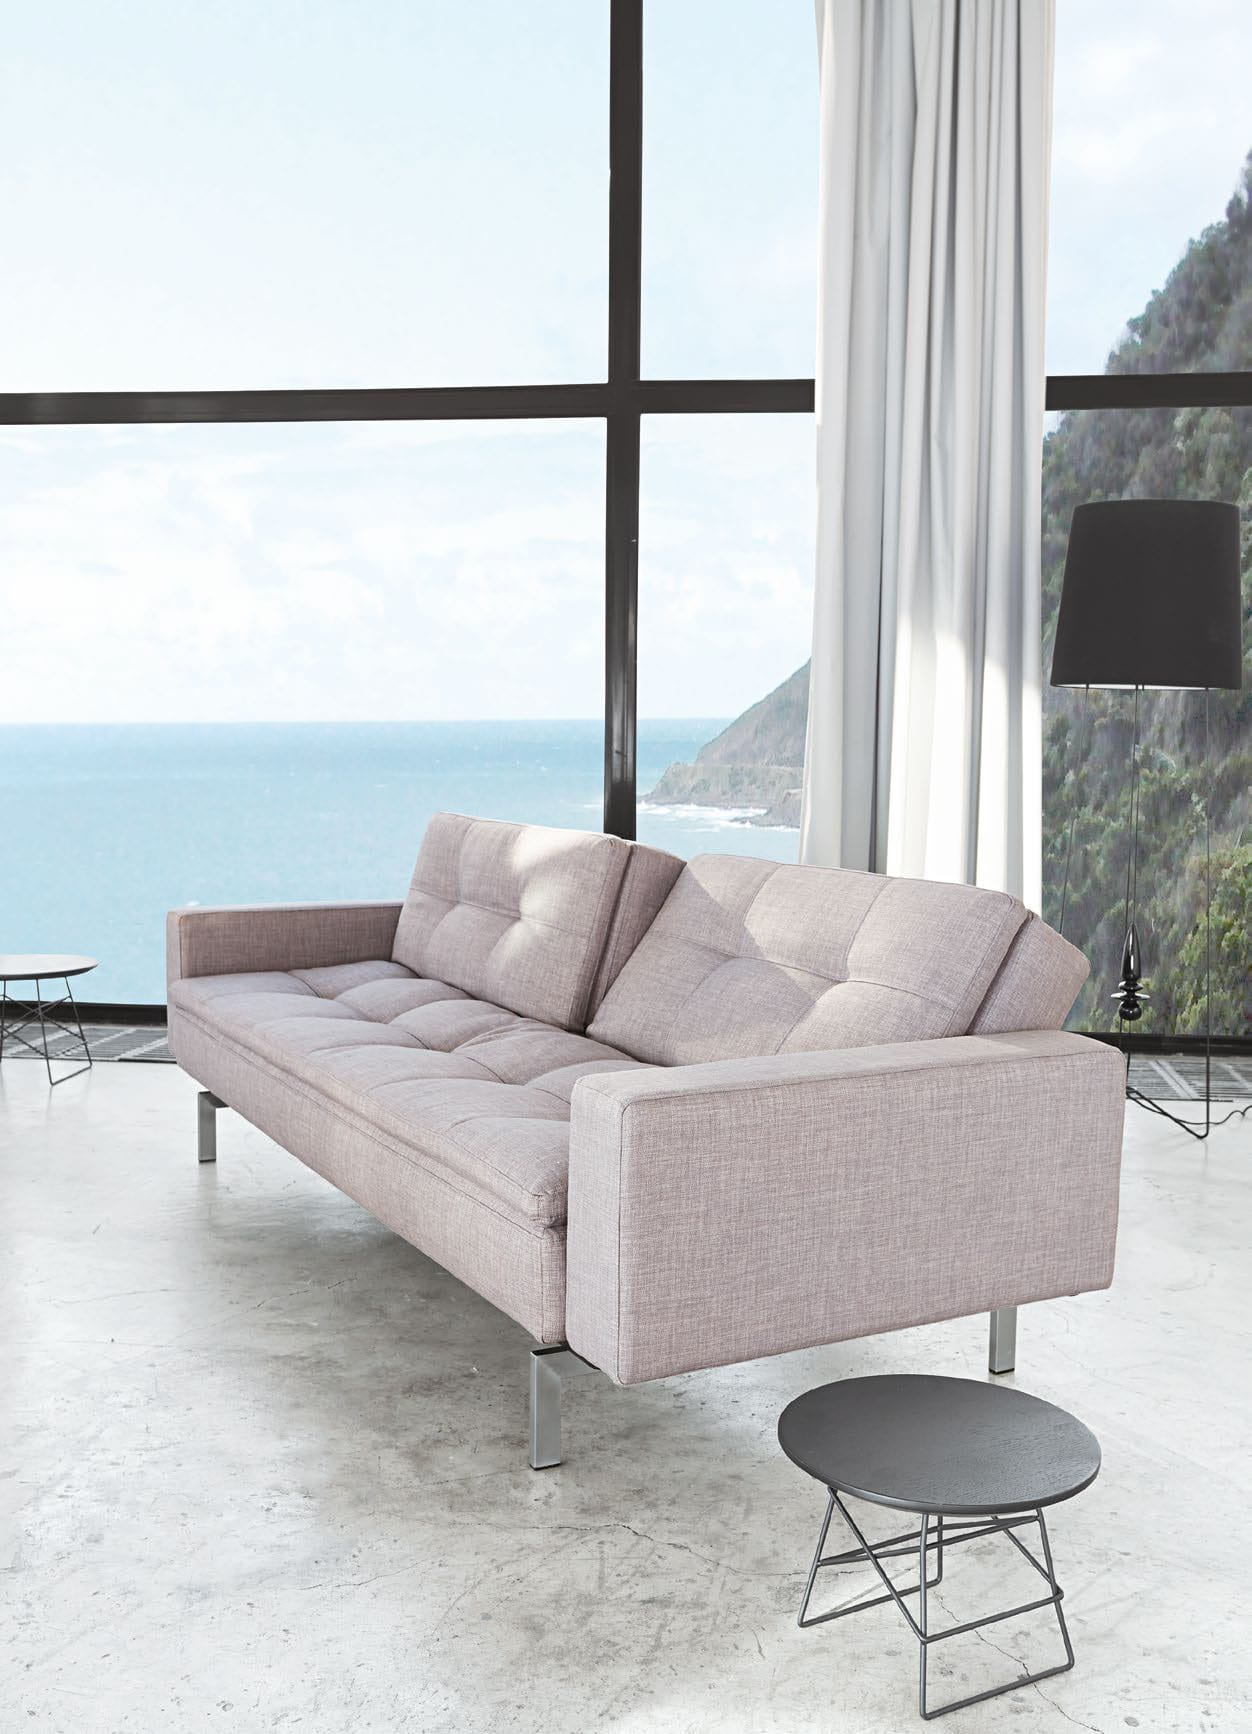 Dublexo Deluxe Sofa w Arms Mixed Dance Natural by Innovation